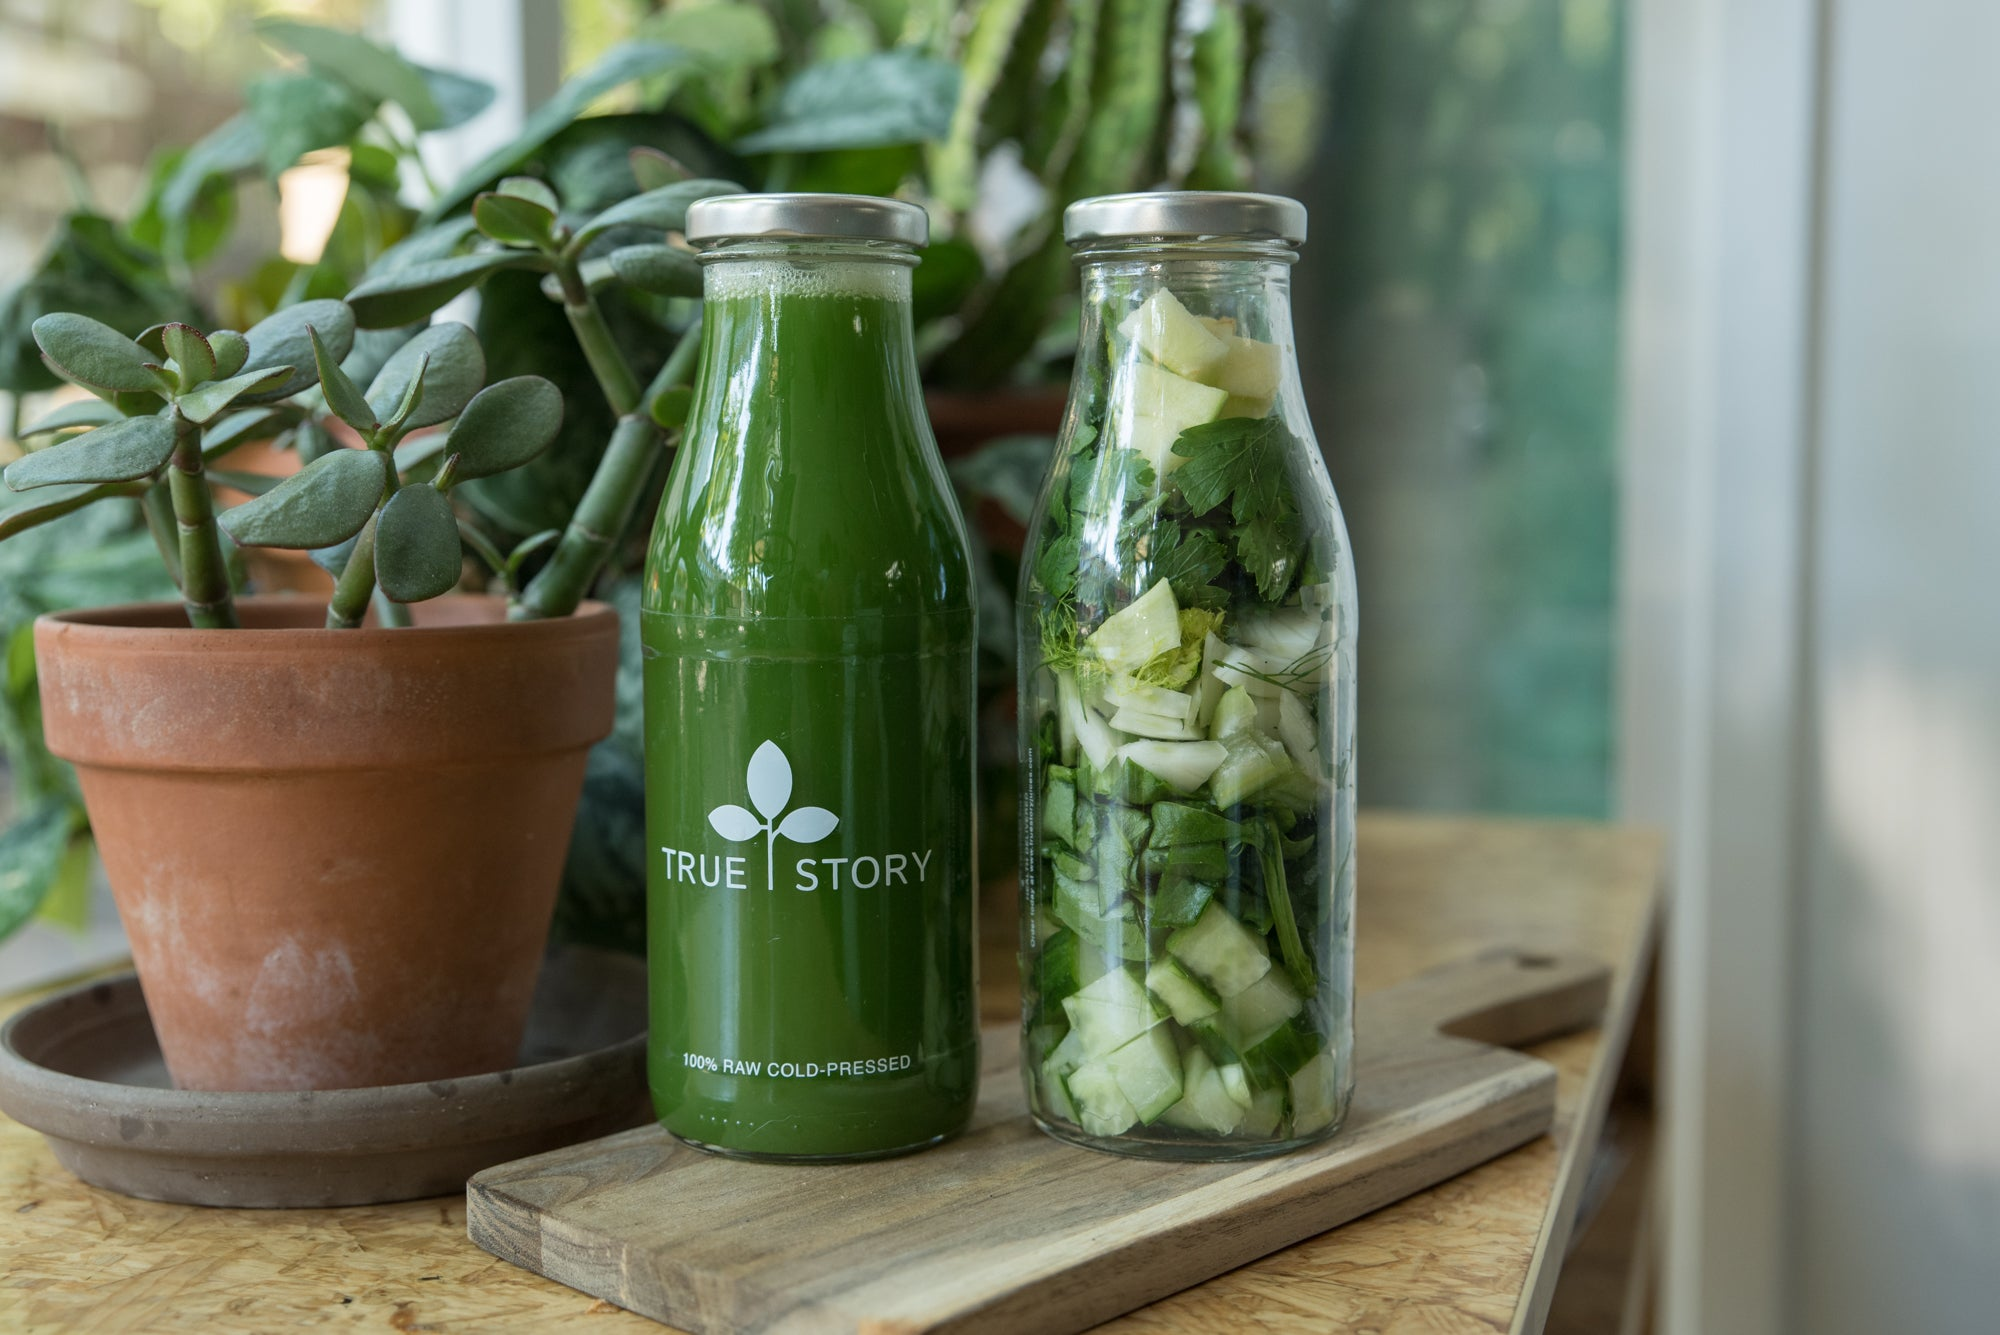 coldpressed juice happy health cold-pressed detox destress vegetables